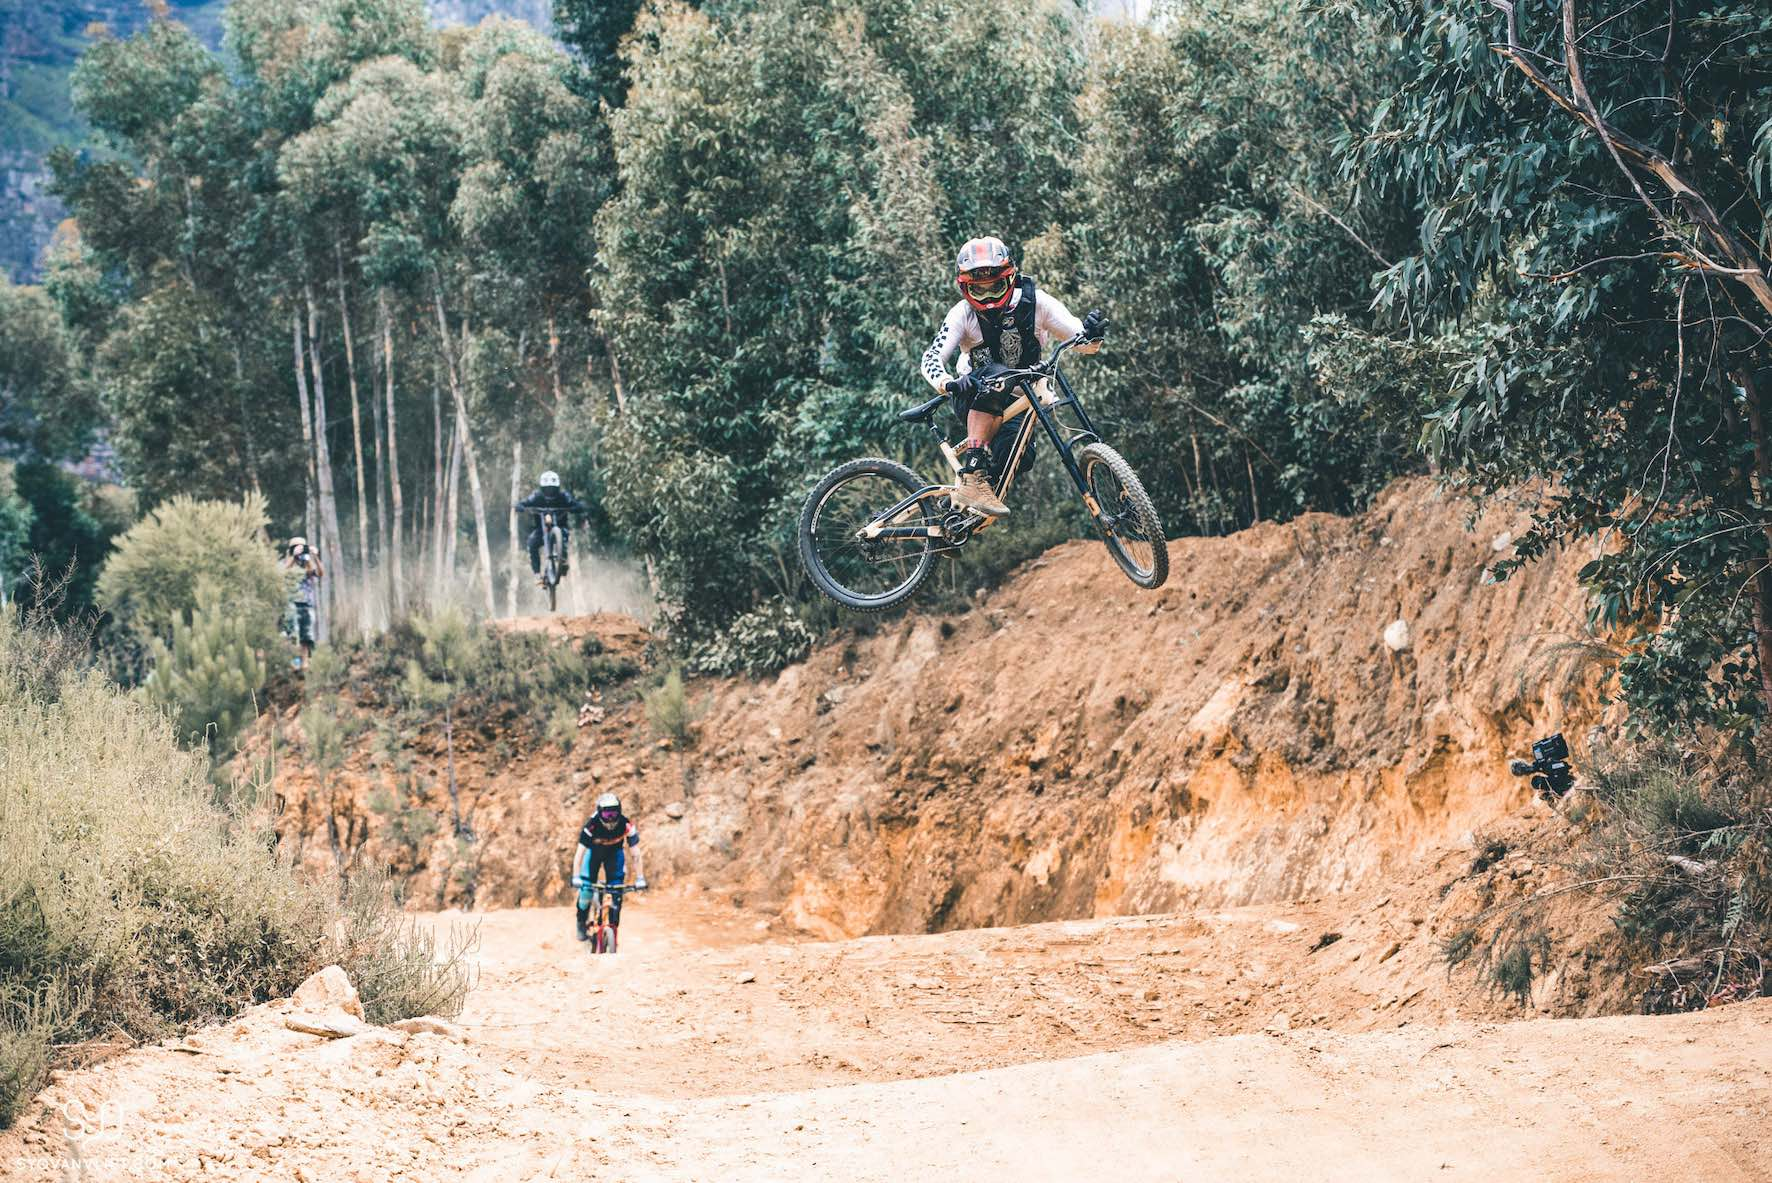 Freeride Mountain Bike master, Nico Vink riding at DarkFEST 2019